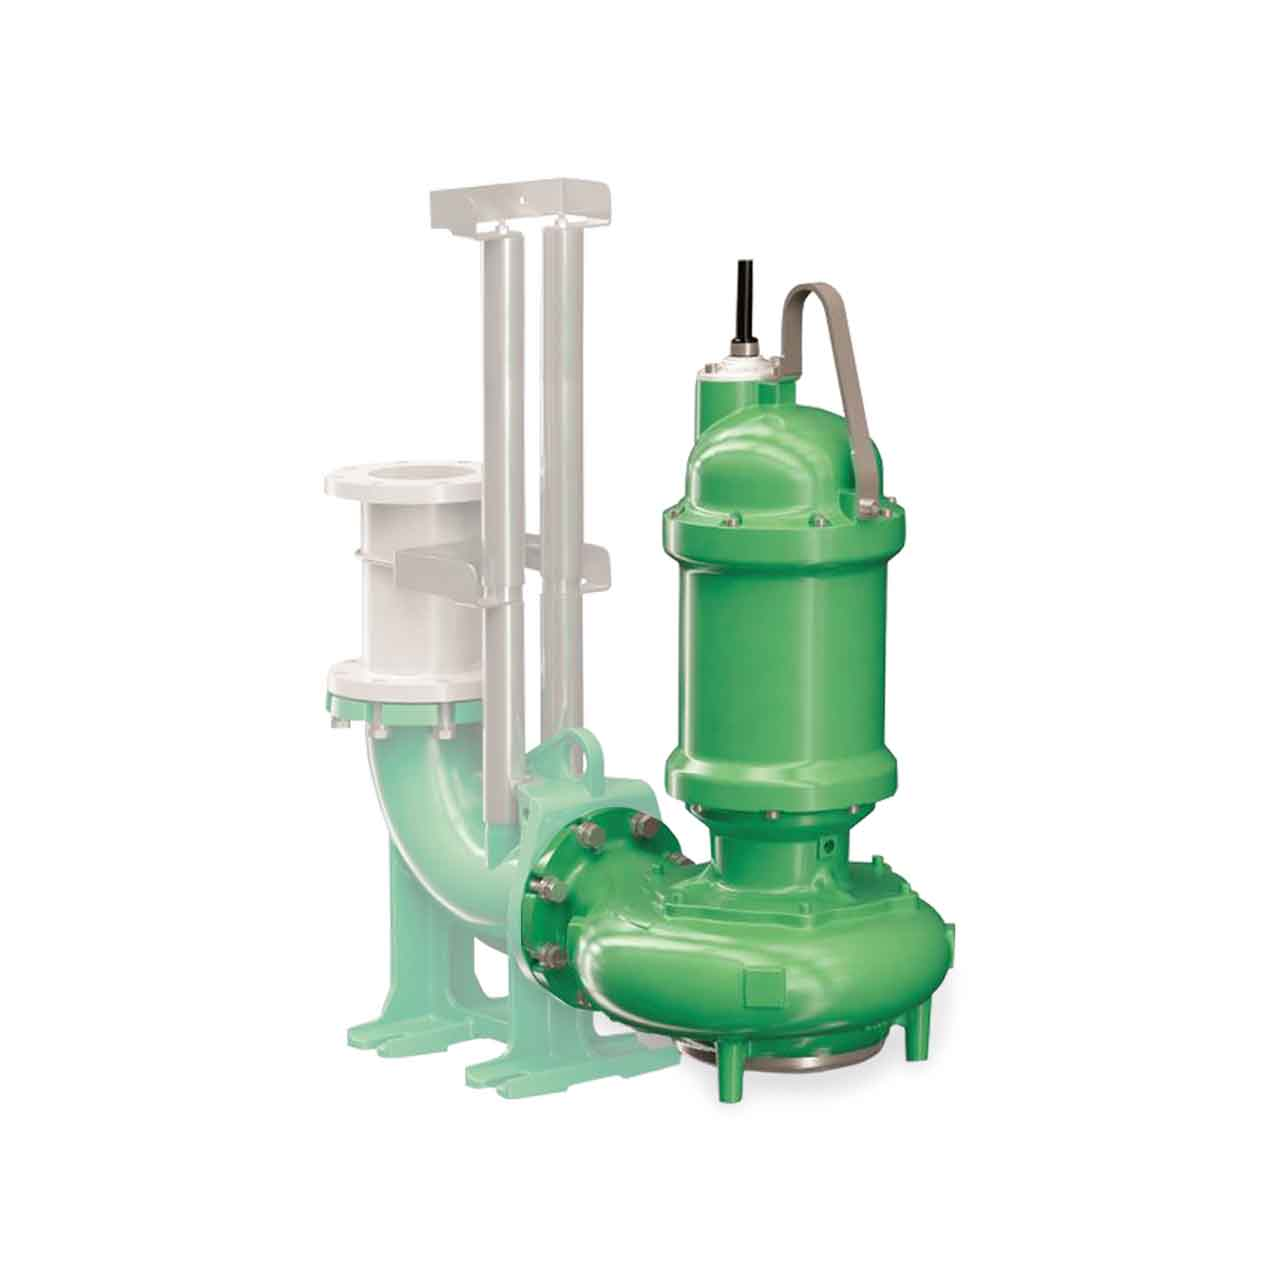 Demersible Chopper Pumps